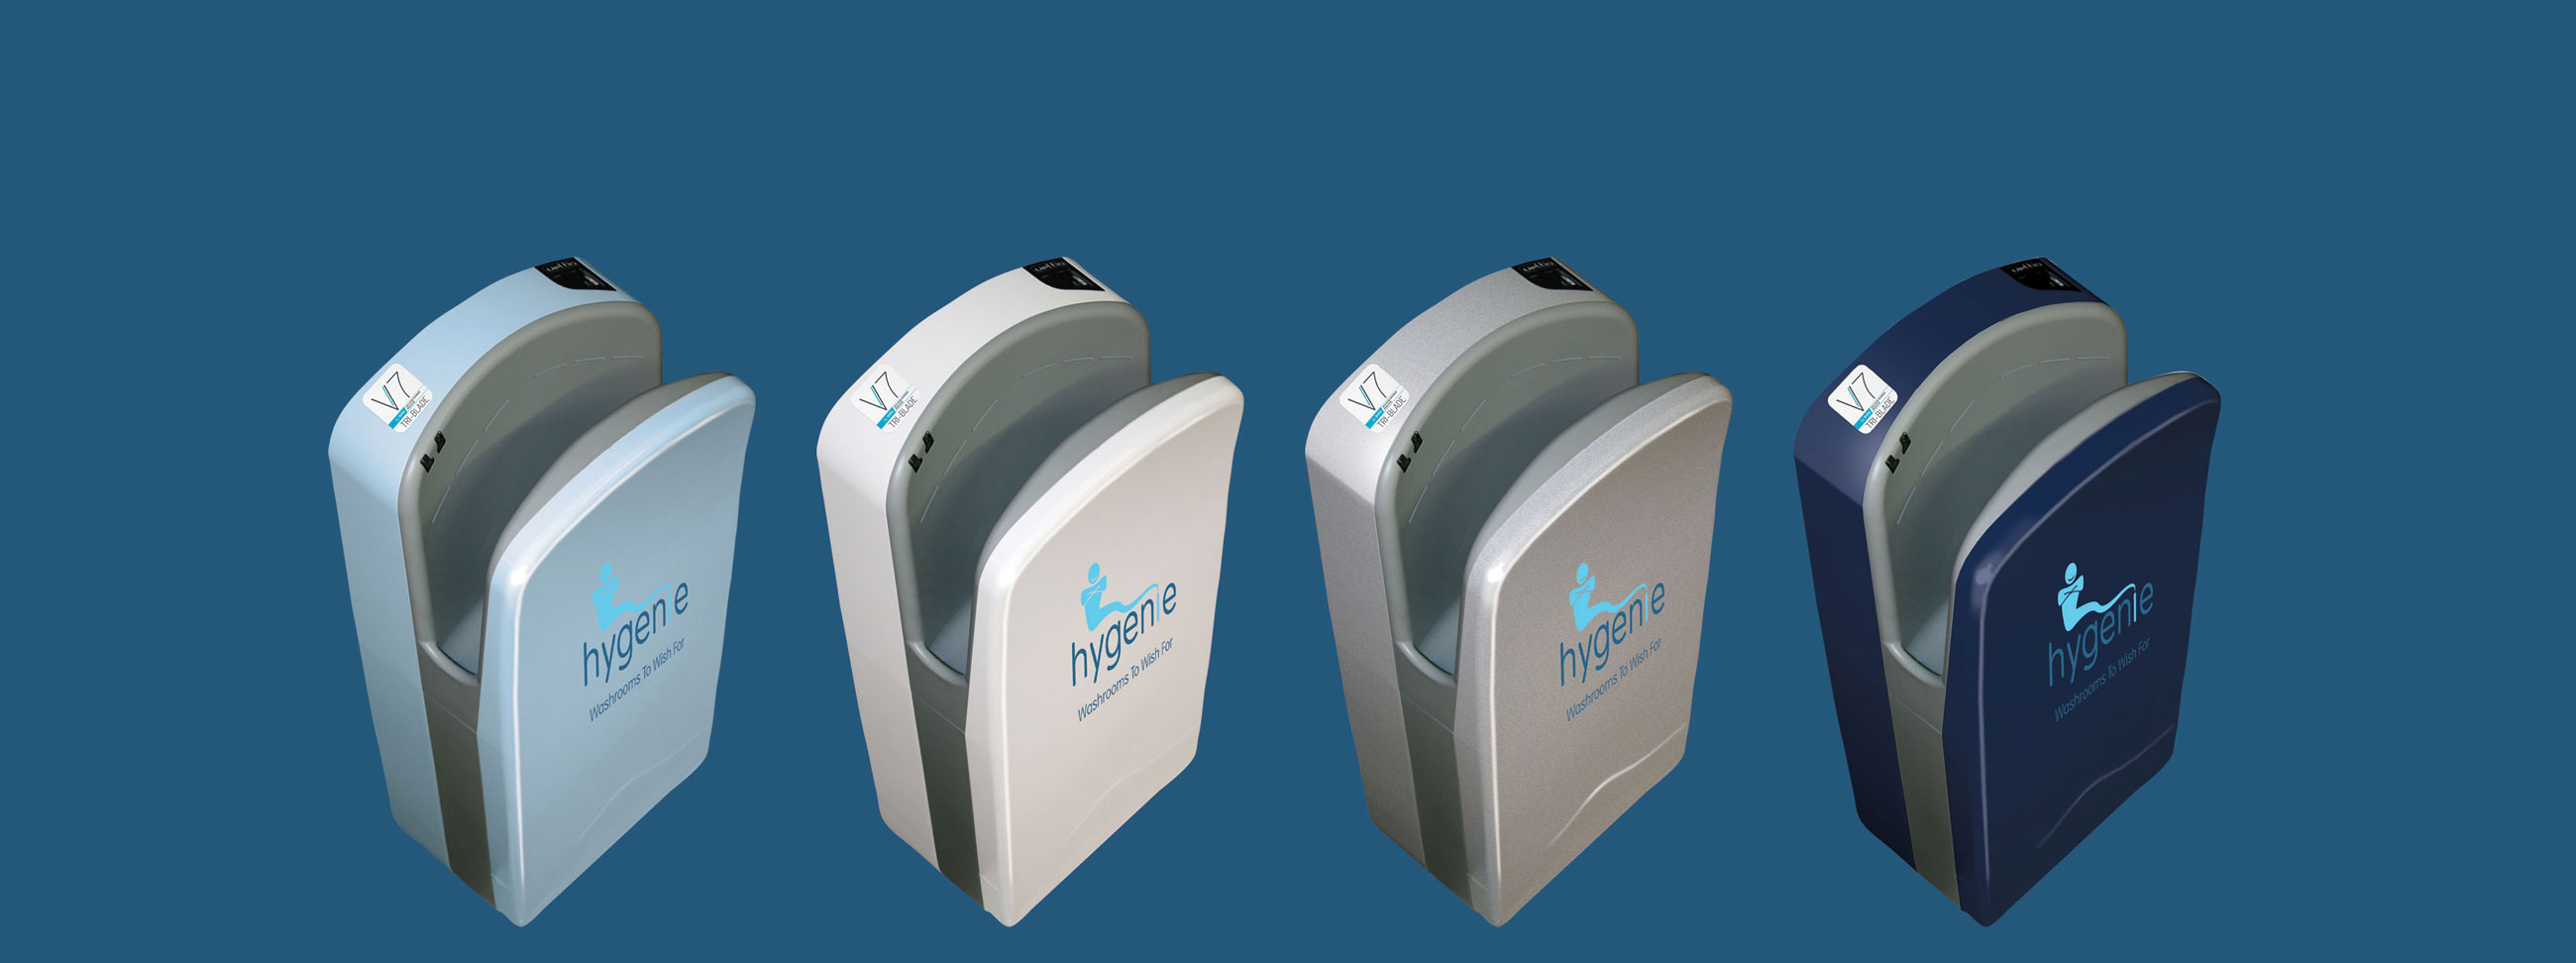 4 different cloloured modern hand dryers Hygenie Birmingham UK